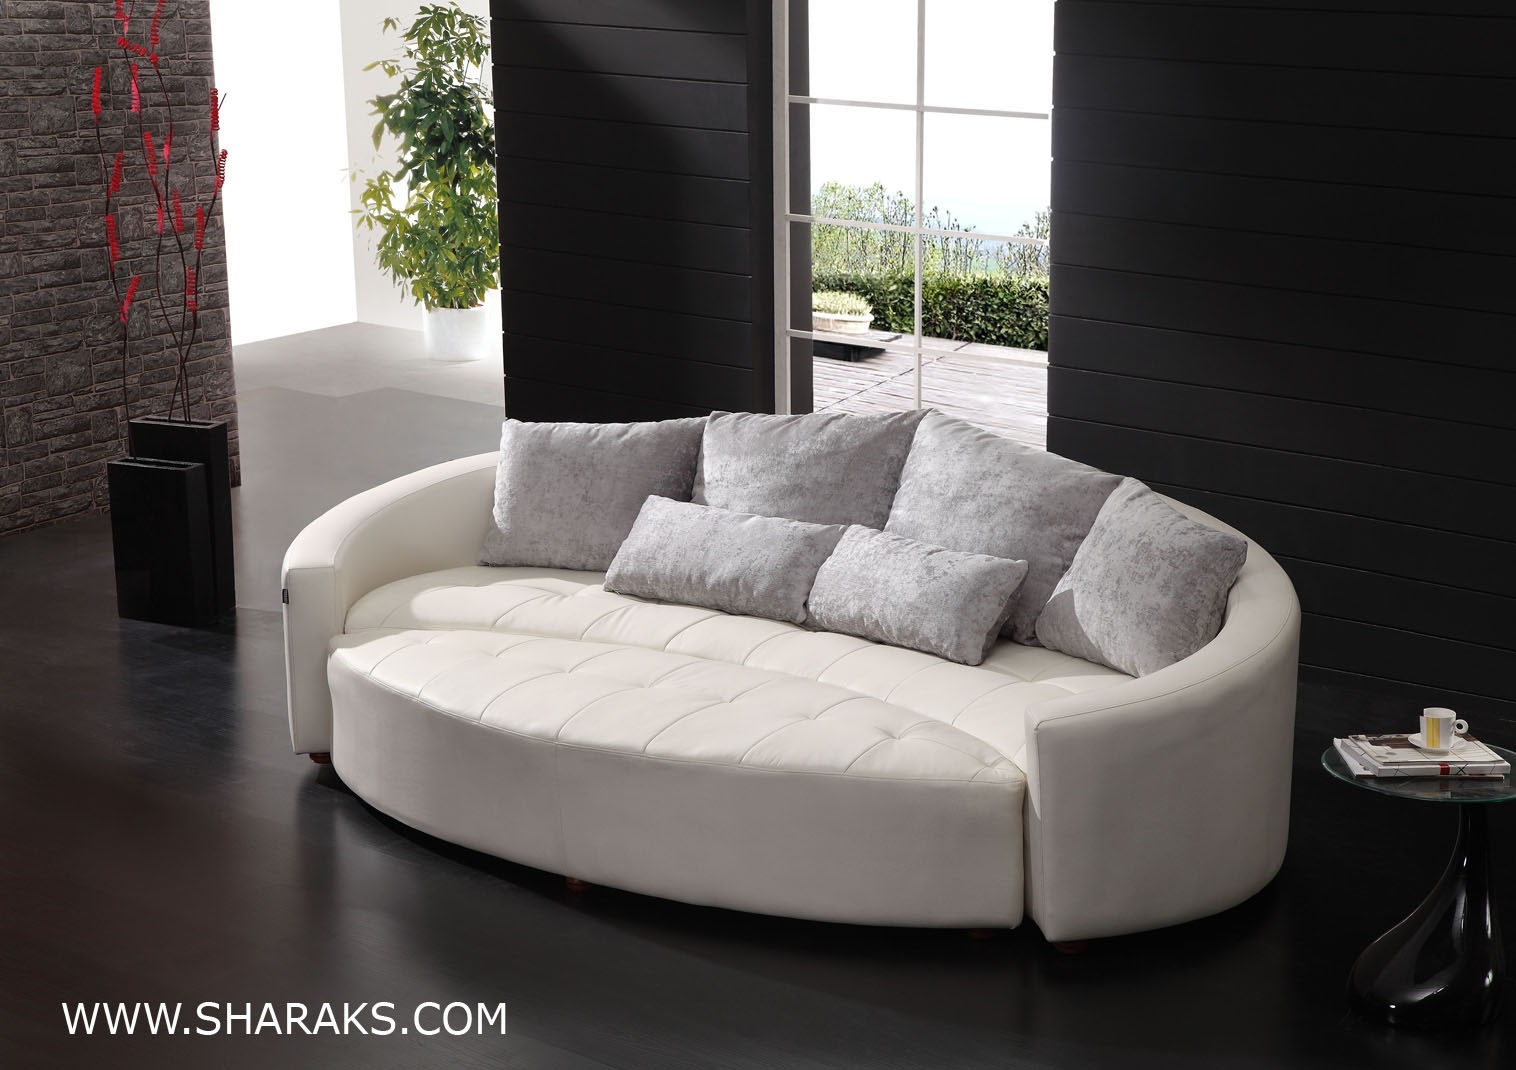 Stylish 1000 Images About Curved Couch Ideas On Pinterest Curved Throughout Contemporary Curved Sofas (View 5 of 15)